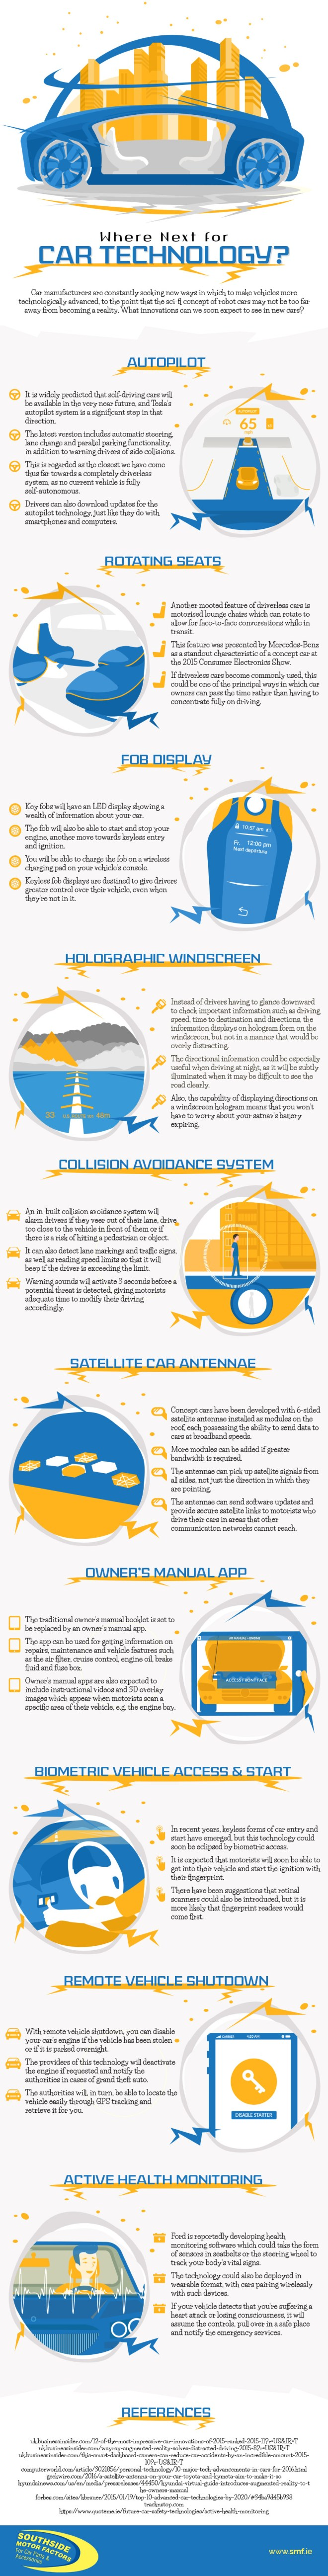 infographic – Where-next-for-car-technology